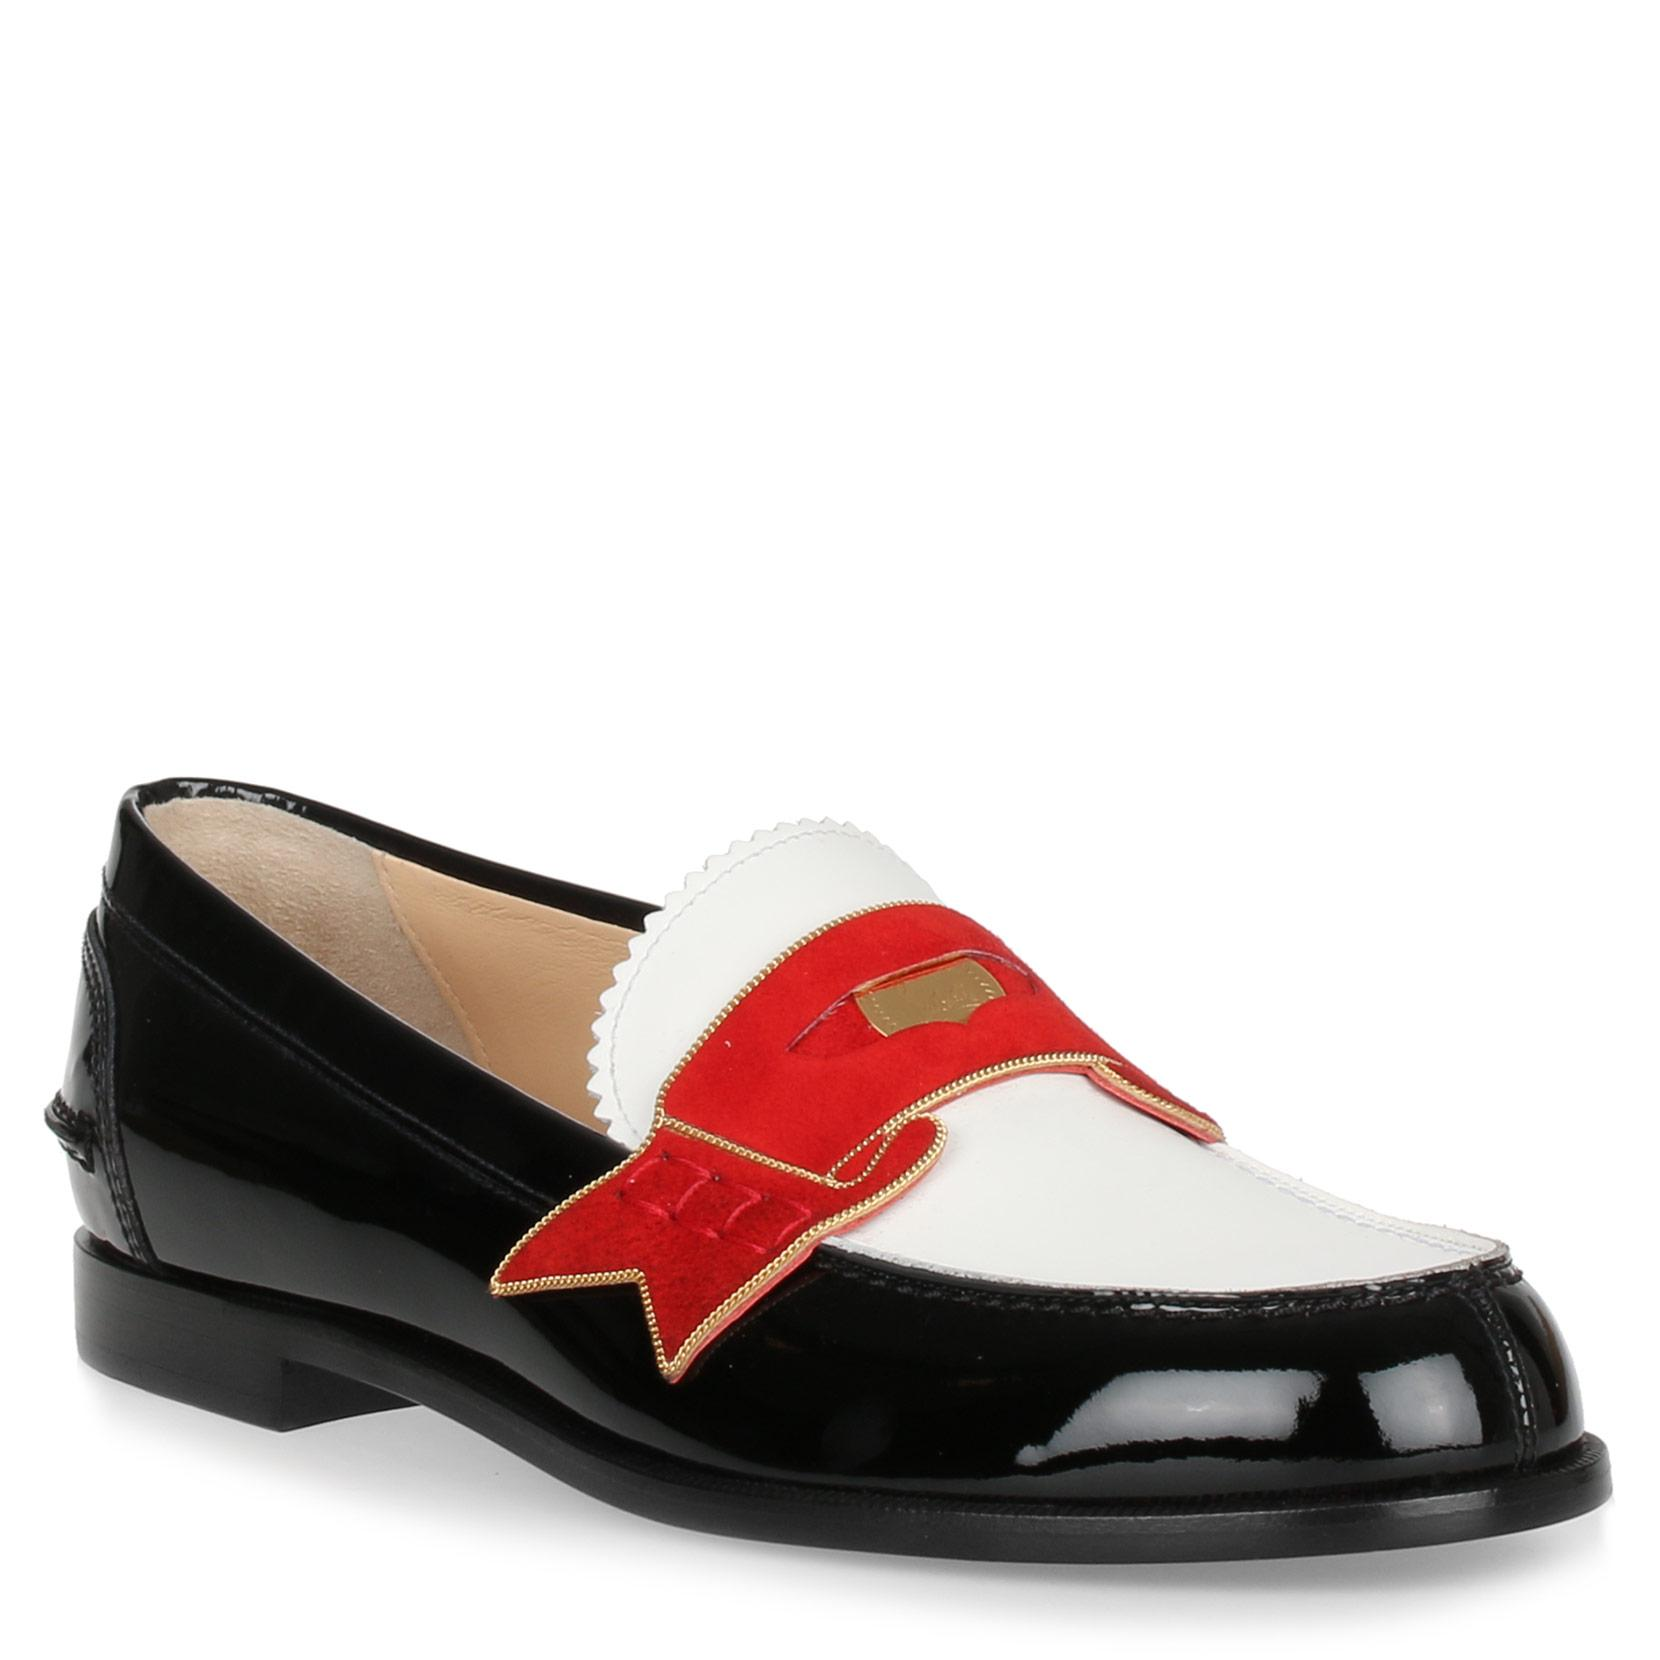 5517fd91146 Moana Suede And Chain-Trimmed Leather Loafers in Black